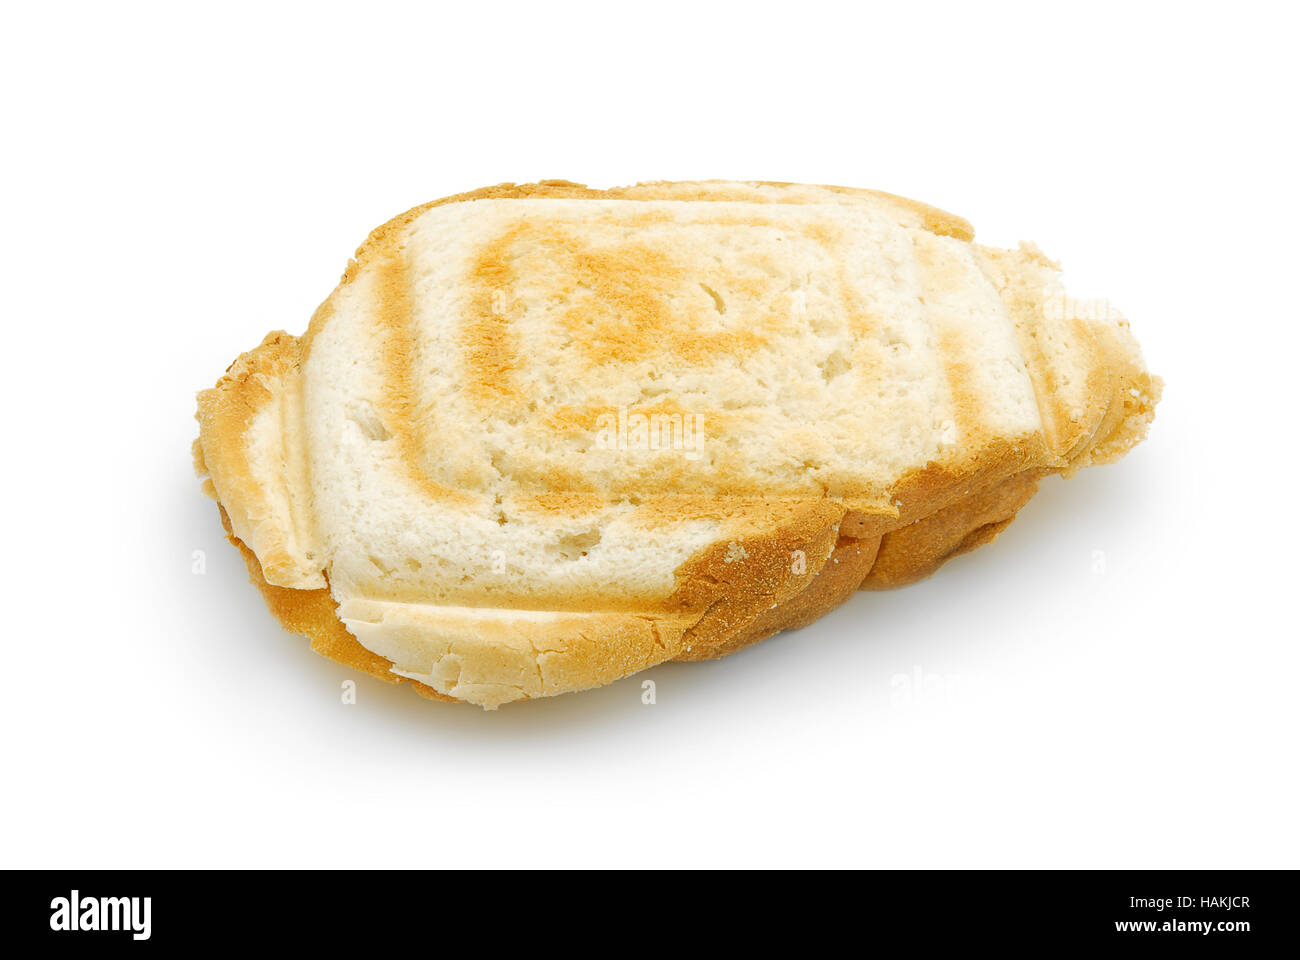 grilled sandwich - Stock Image